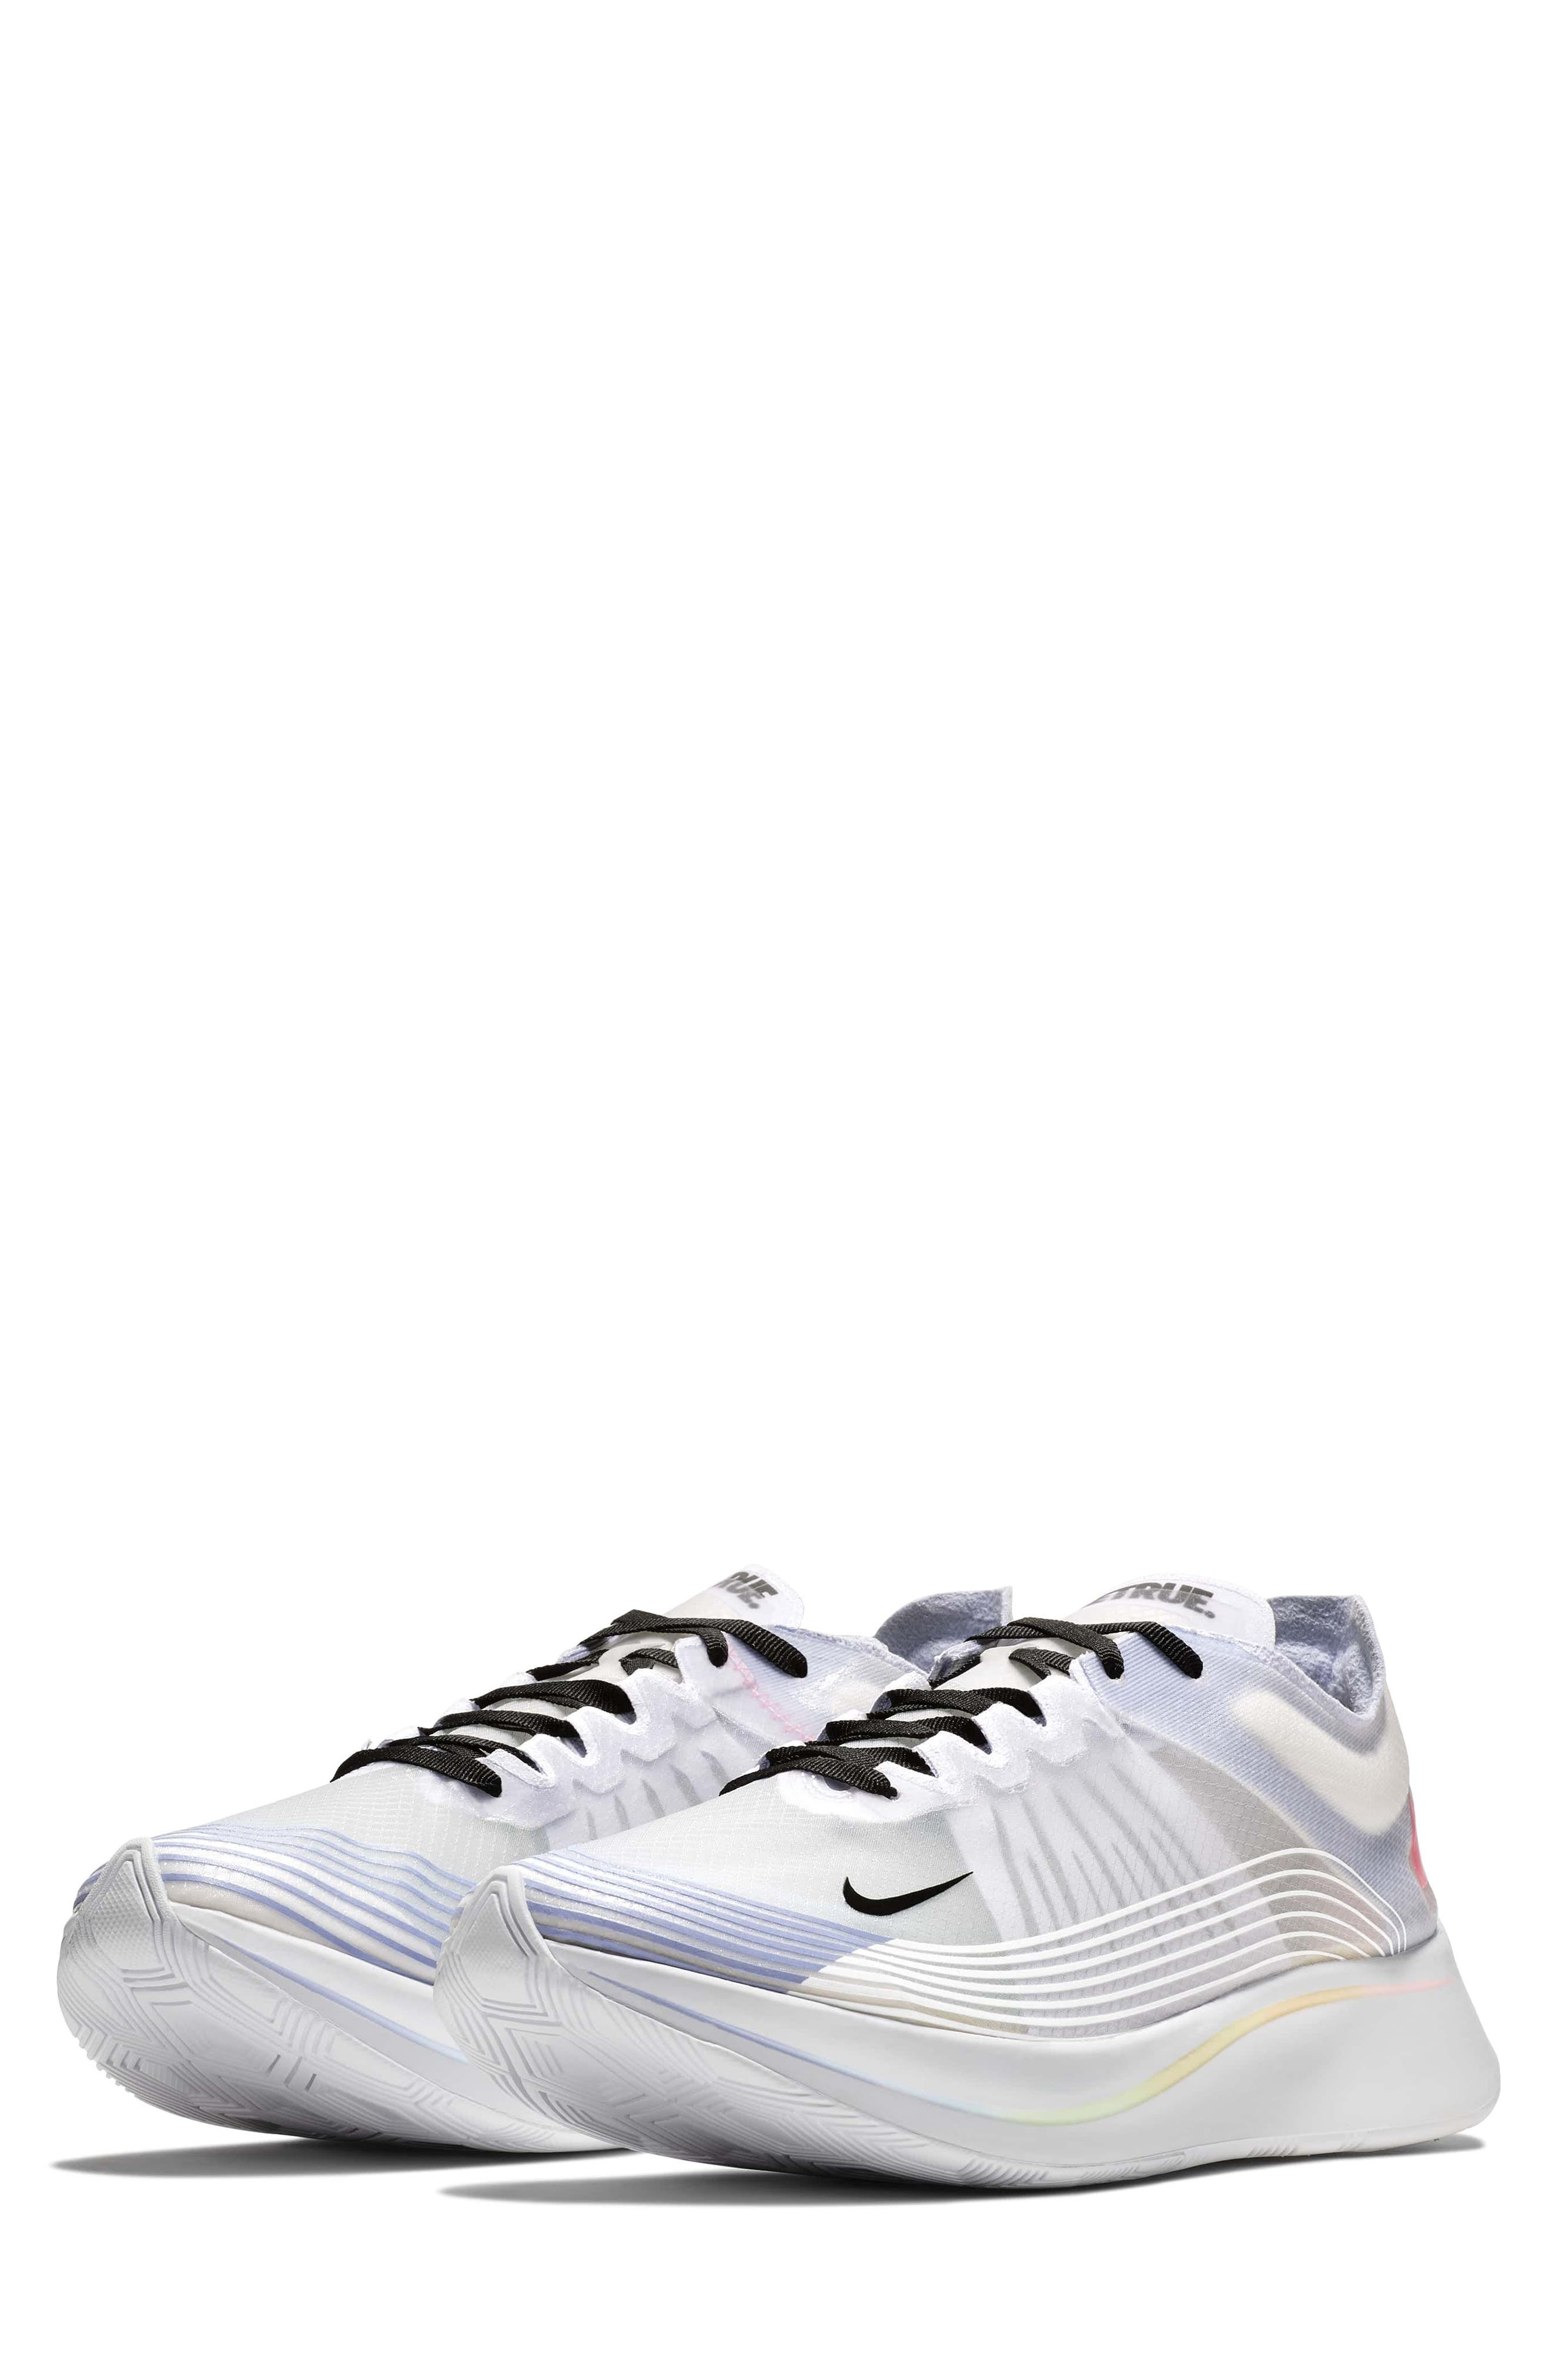 Nordstrom x Nike Zoom Fly BETRUE Running Shoe,                             Main thumbnail 1, color,                             White/ Black/ Palest Purple